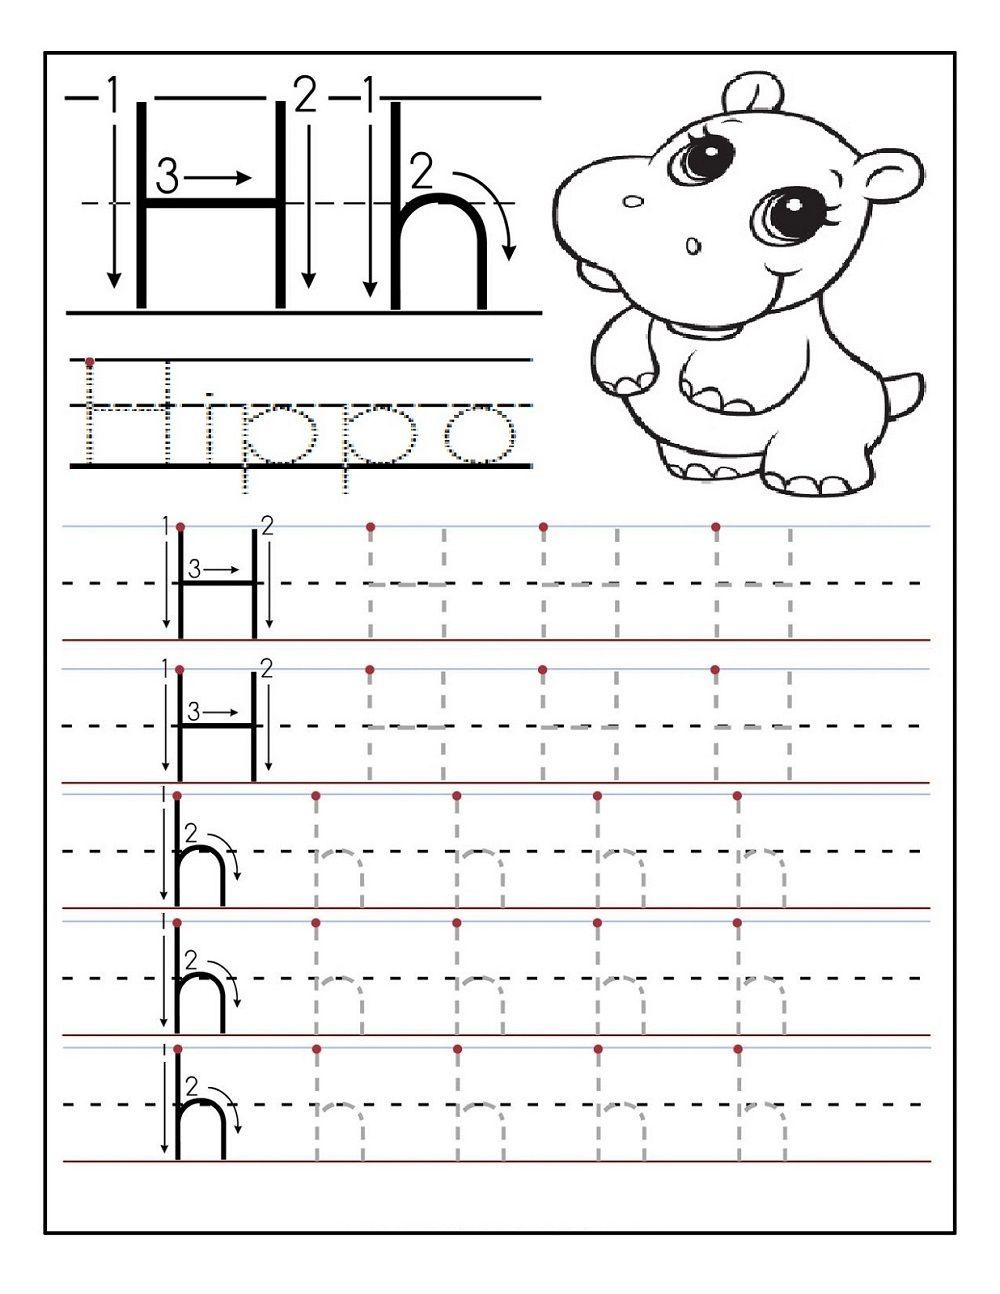 hight resolution of Tracing Worksheets 3 Year Old Fun   Tracing worksheets preschool